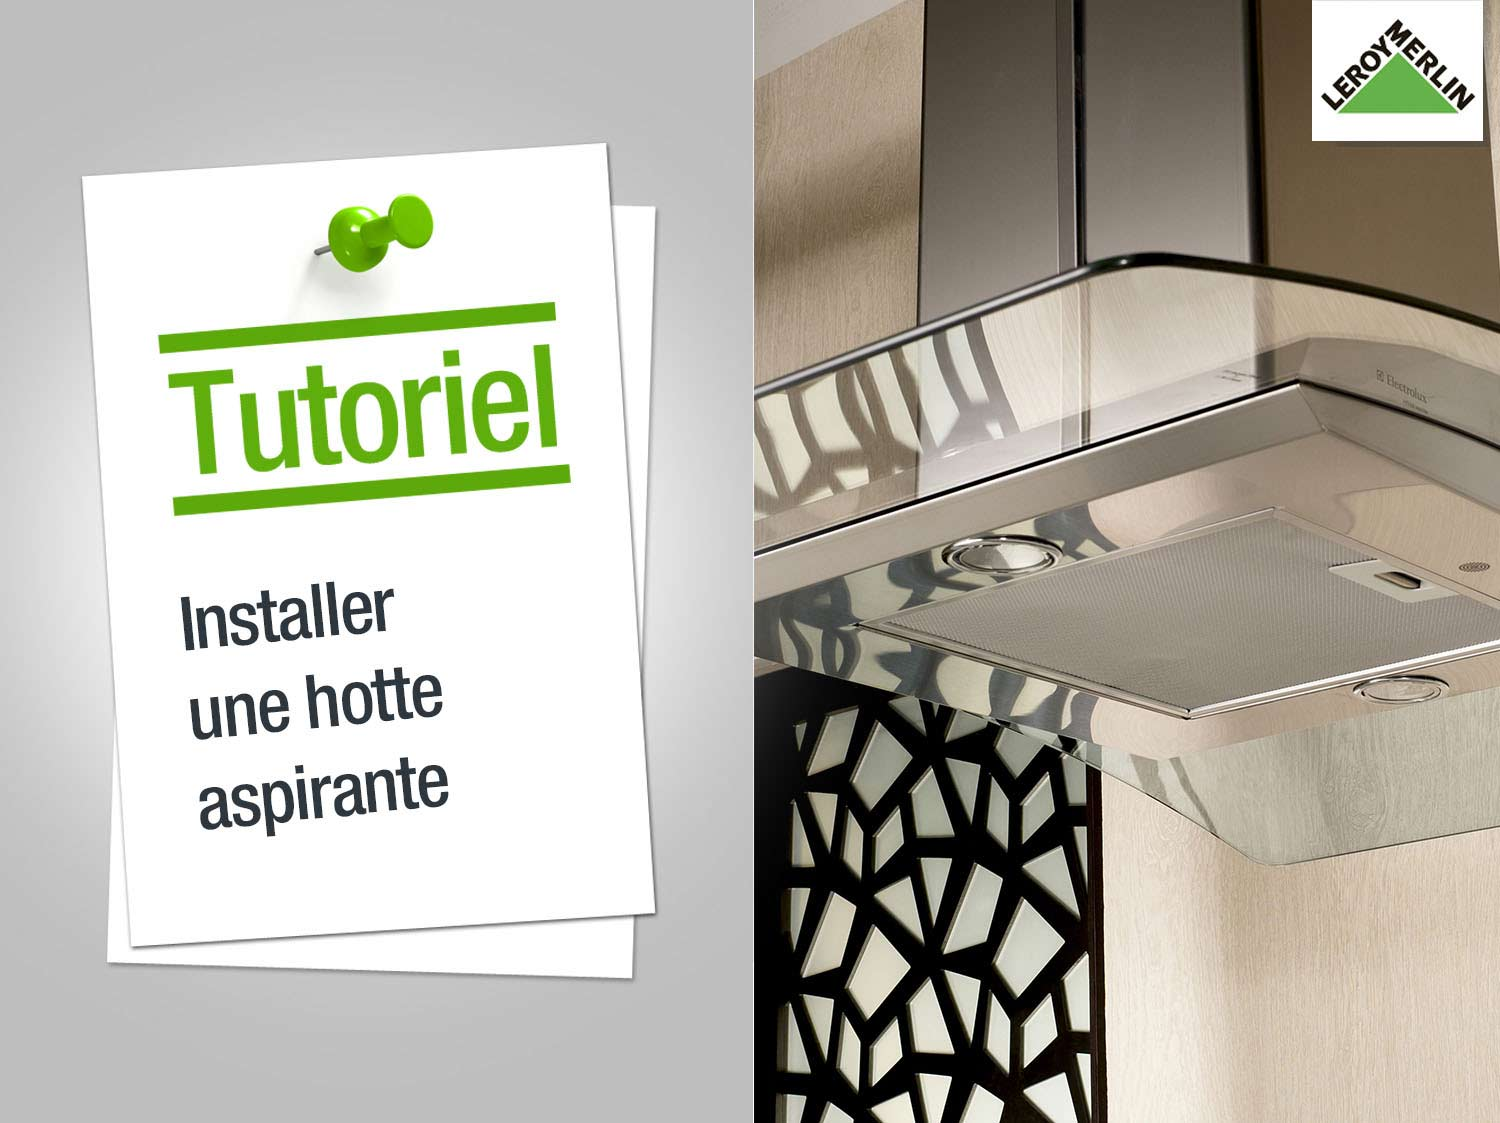 Comment Installer Une Hotte Murale Leroy Merlin Pictures to pin on